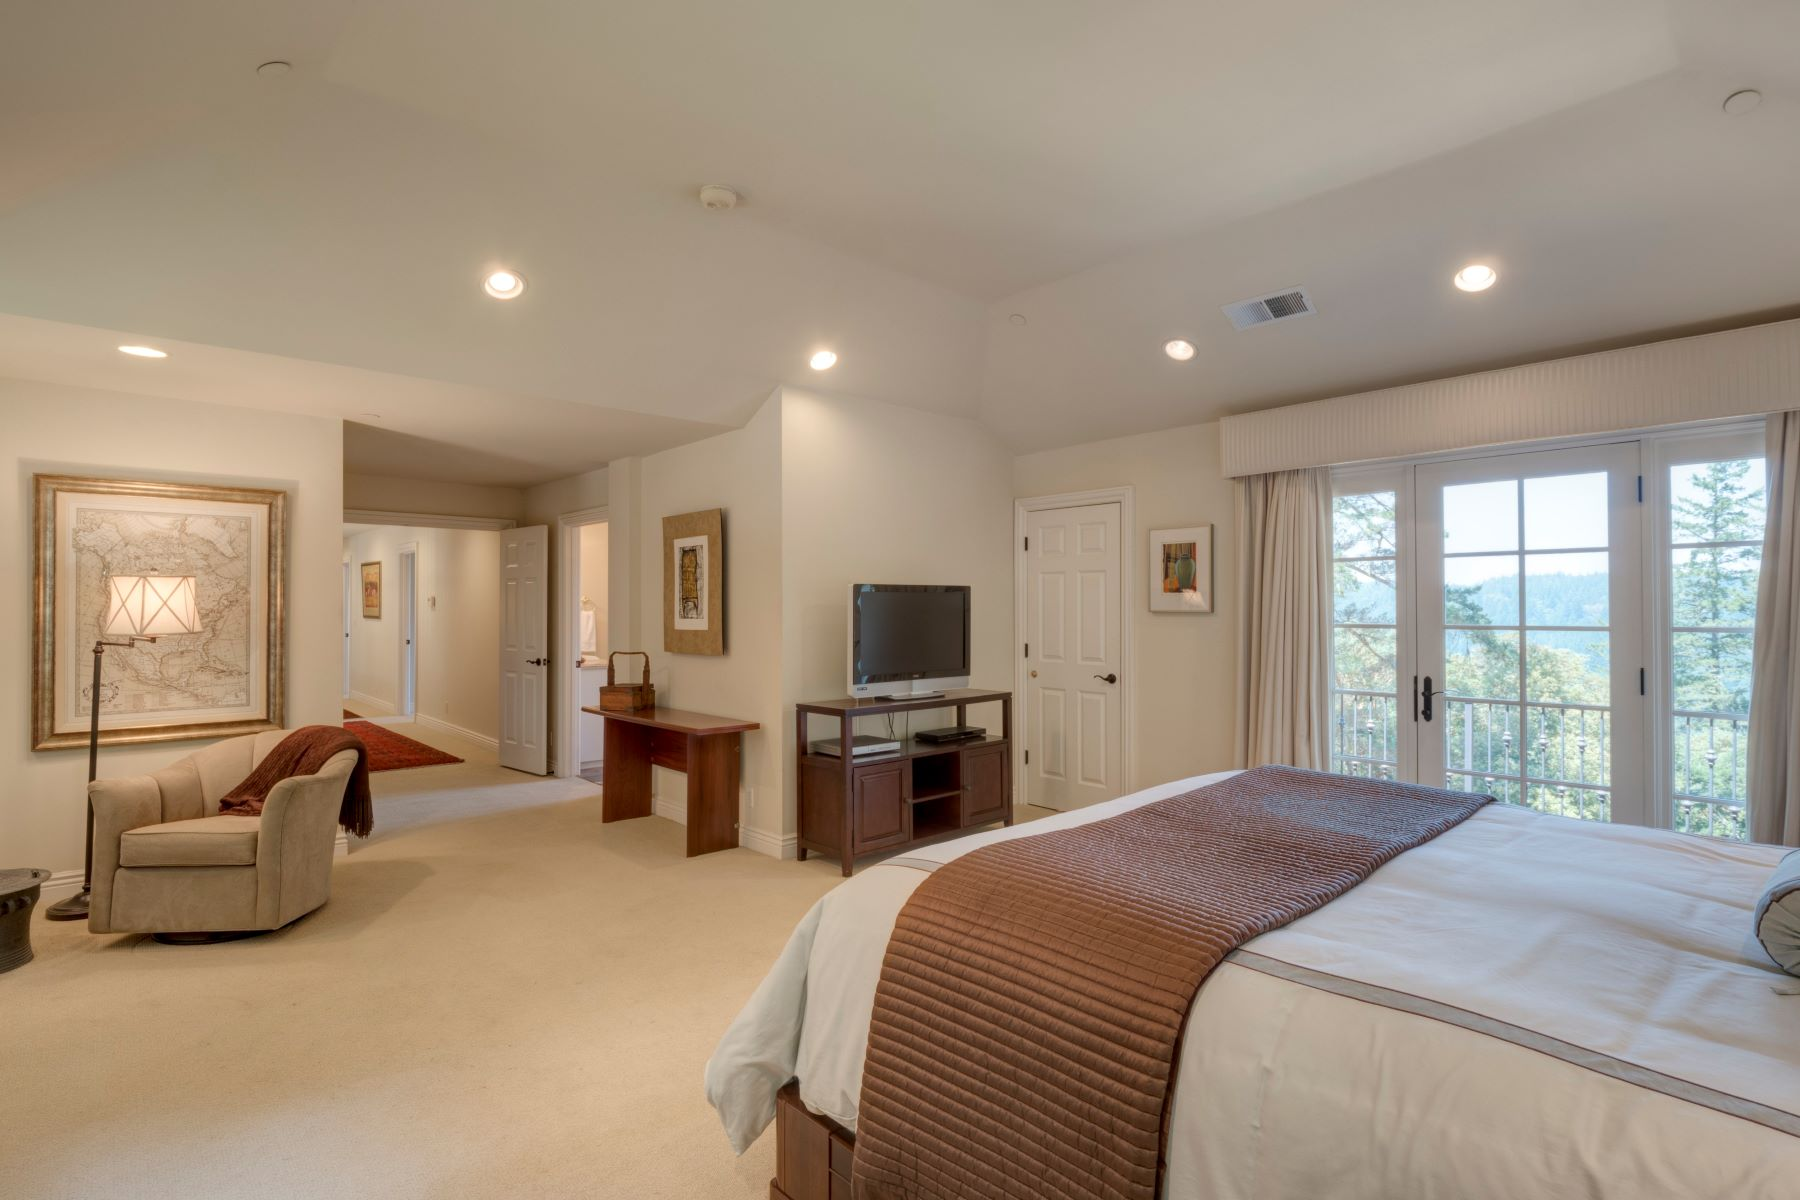 Additional photo for property listing at 1430 Bear Gulch Rd  Woodside, California 94062 United States